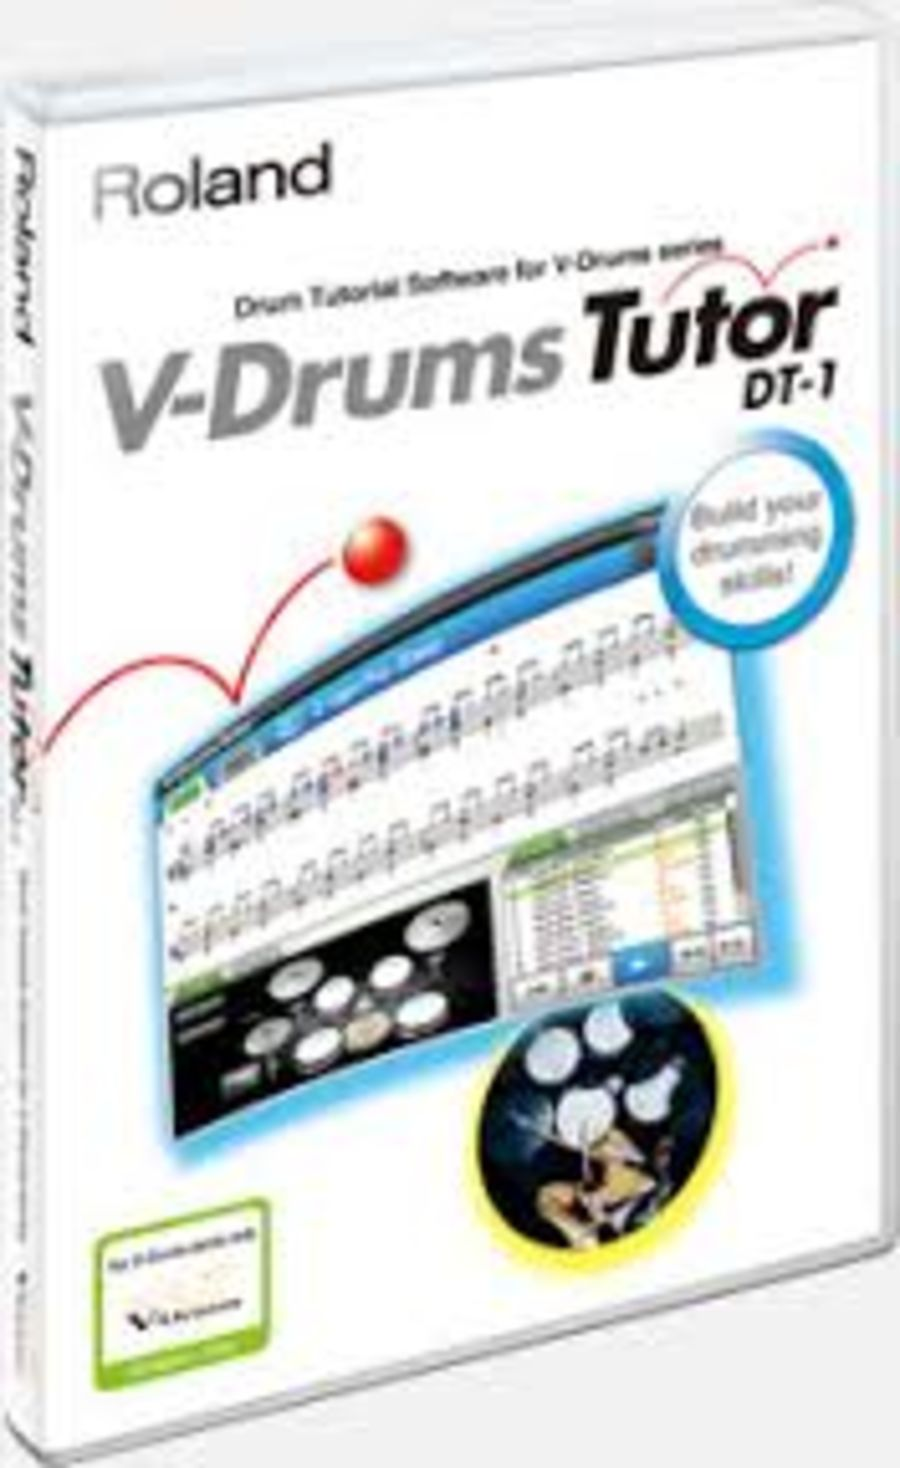 Roland DT1 V-Drum Tutor Software for Mac or PC